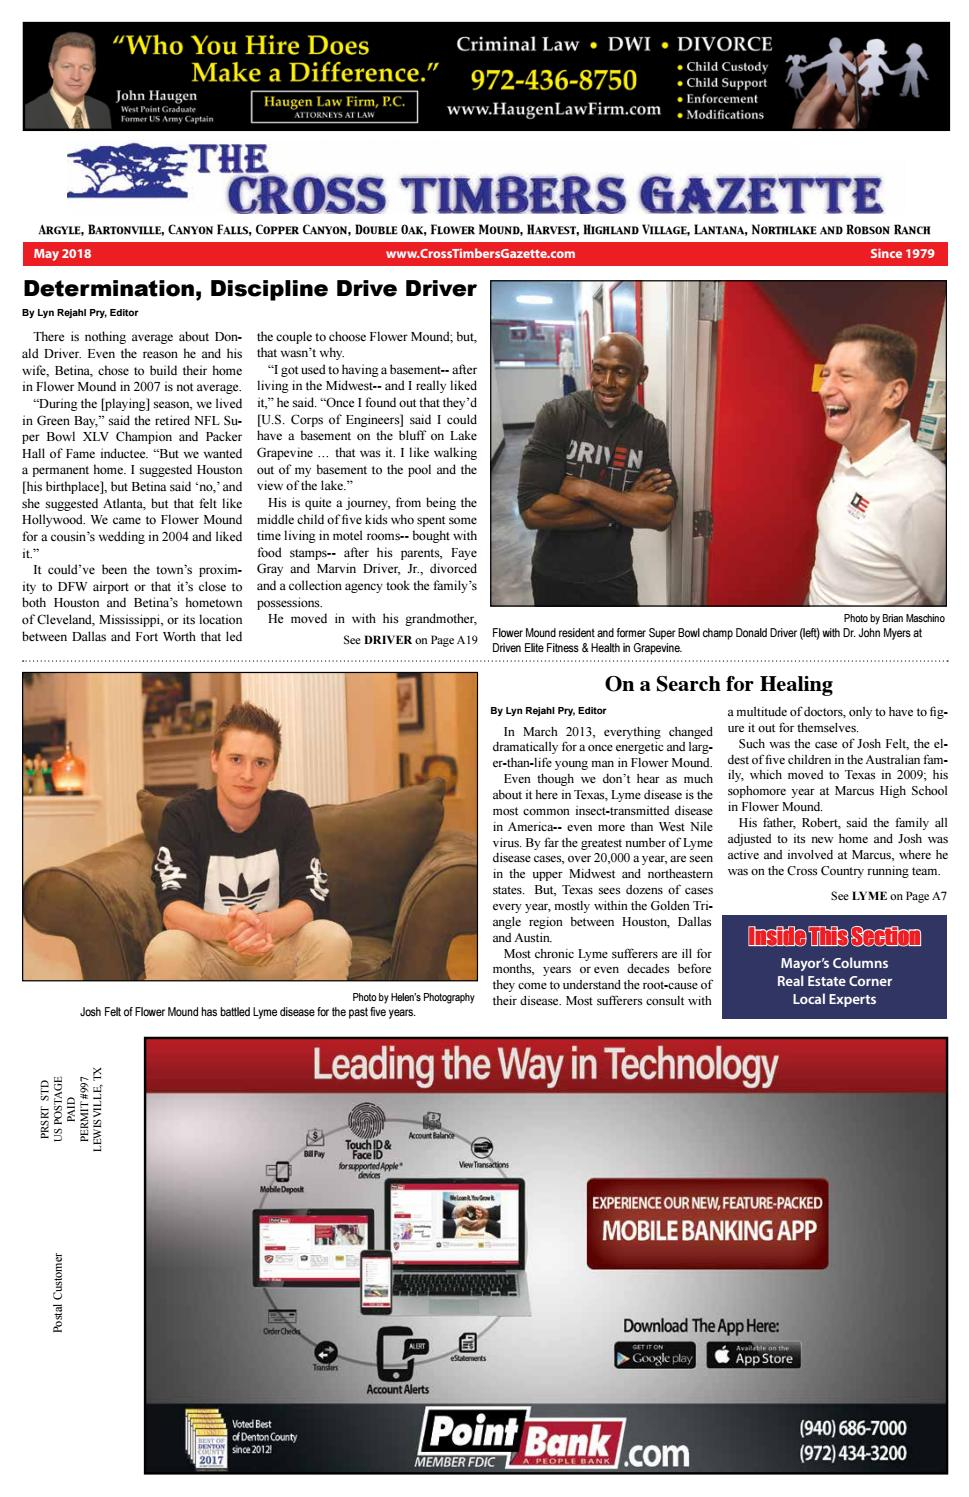 The Cross Timbers Gazette May 2018 by The Cross Timbers Gazette - issuu